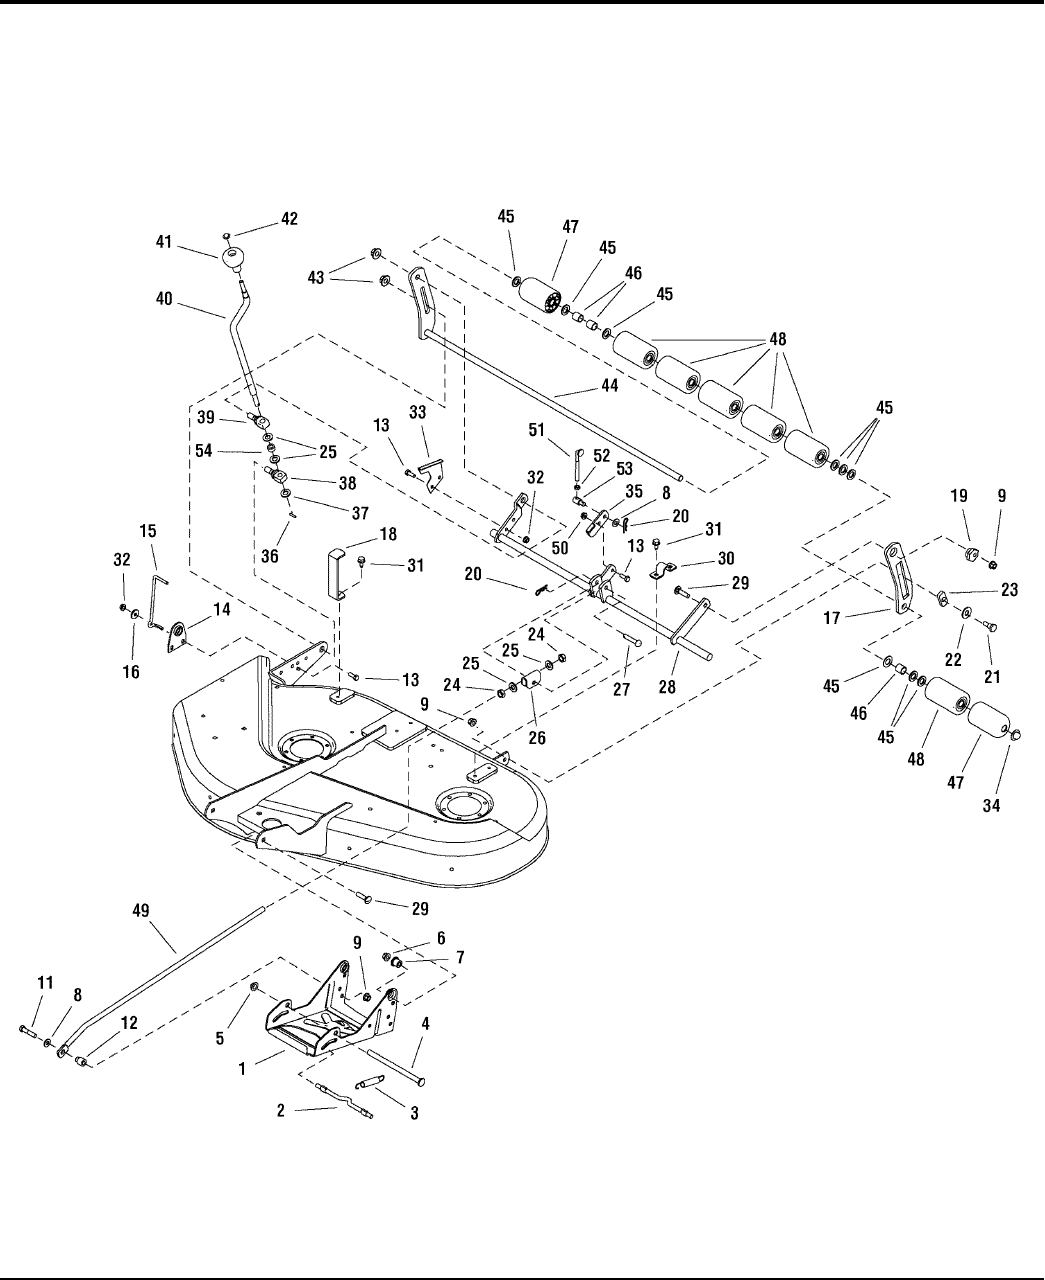 Page 42 of Simplicity Lawn Mower 1600 User Guide